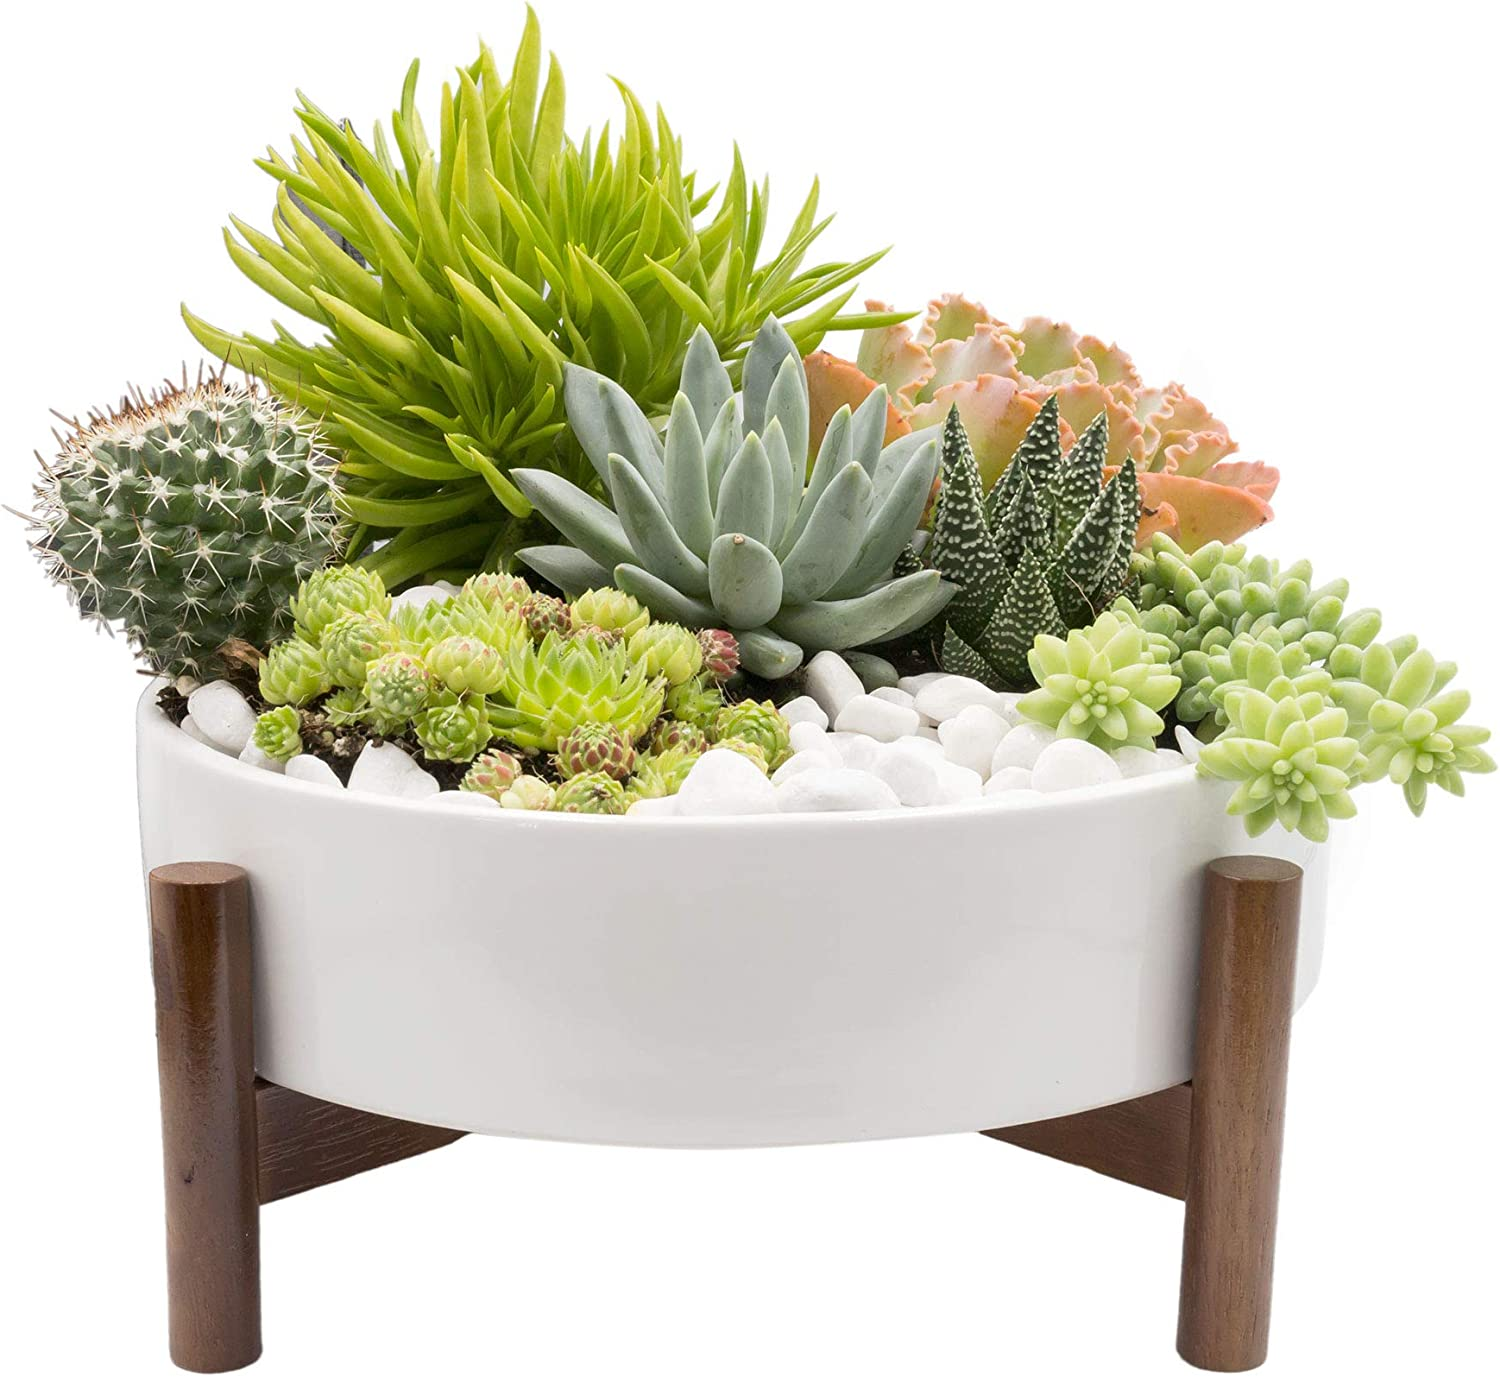 Joda 10 Inch Mid Century Round Succulent Planter with Stand